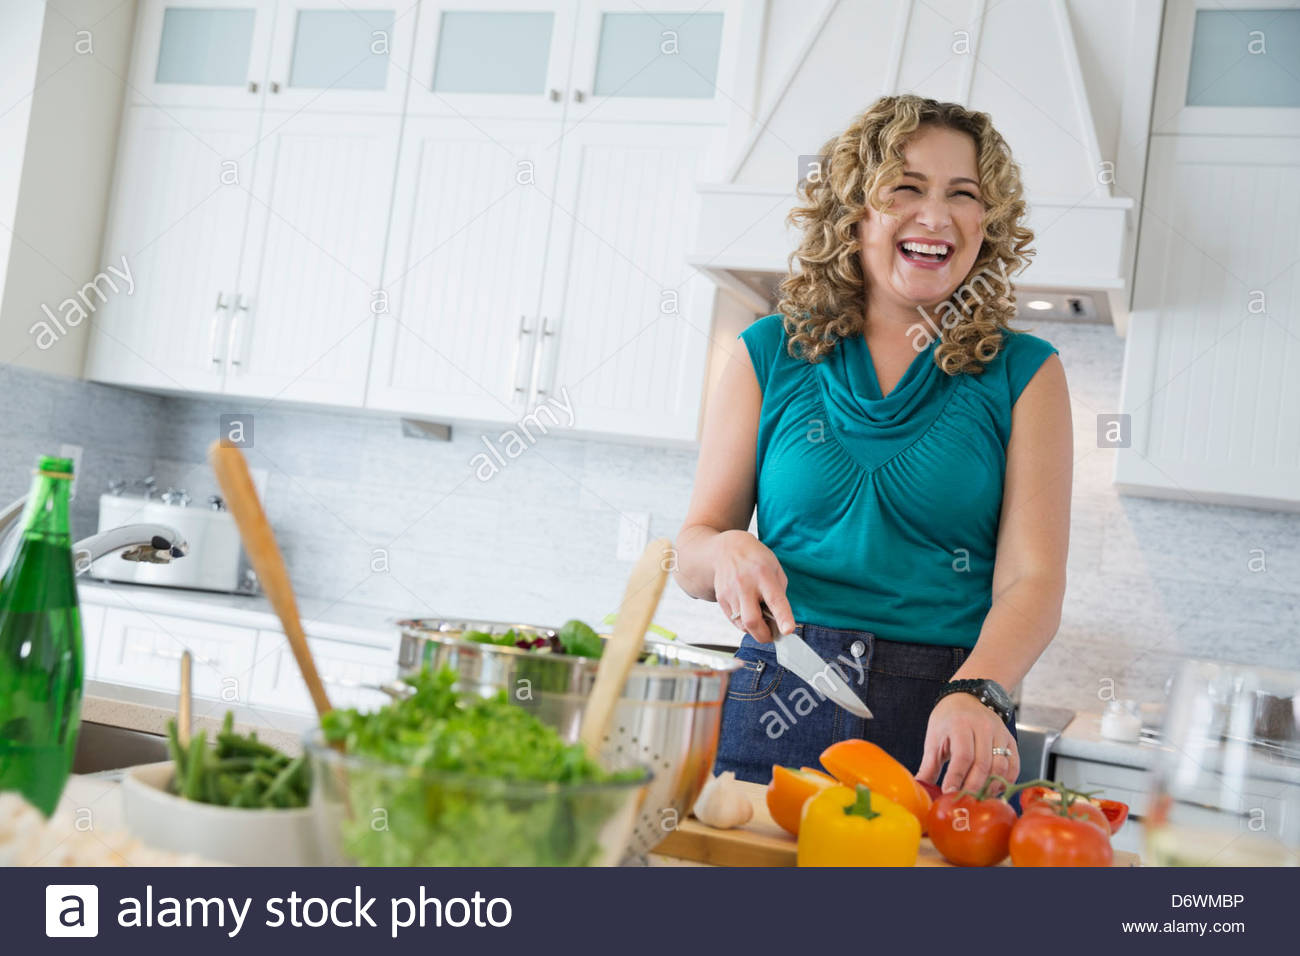 Happy mature woman cutting vegetables in kitchen - Stock Image